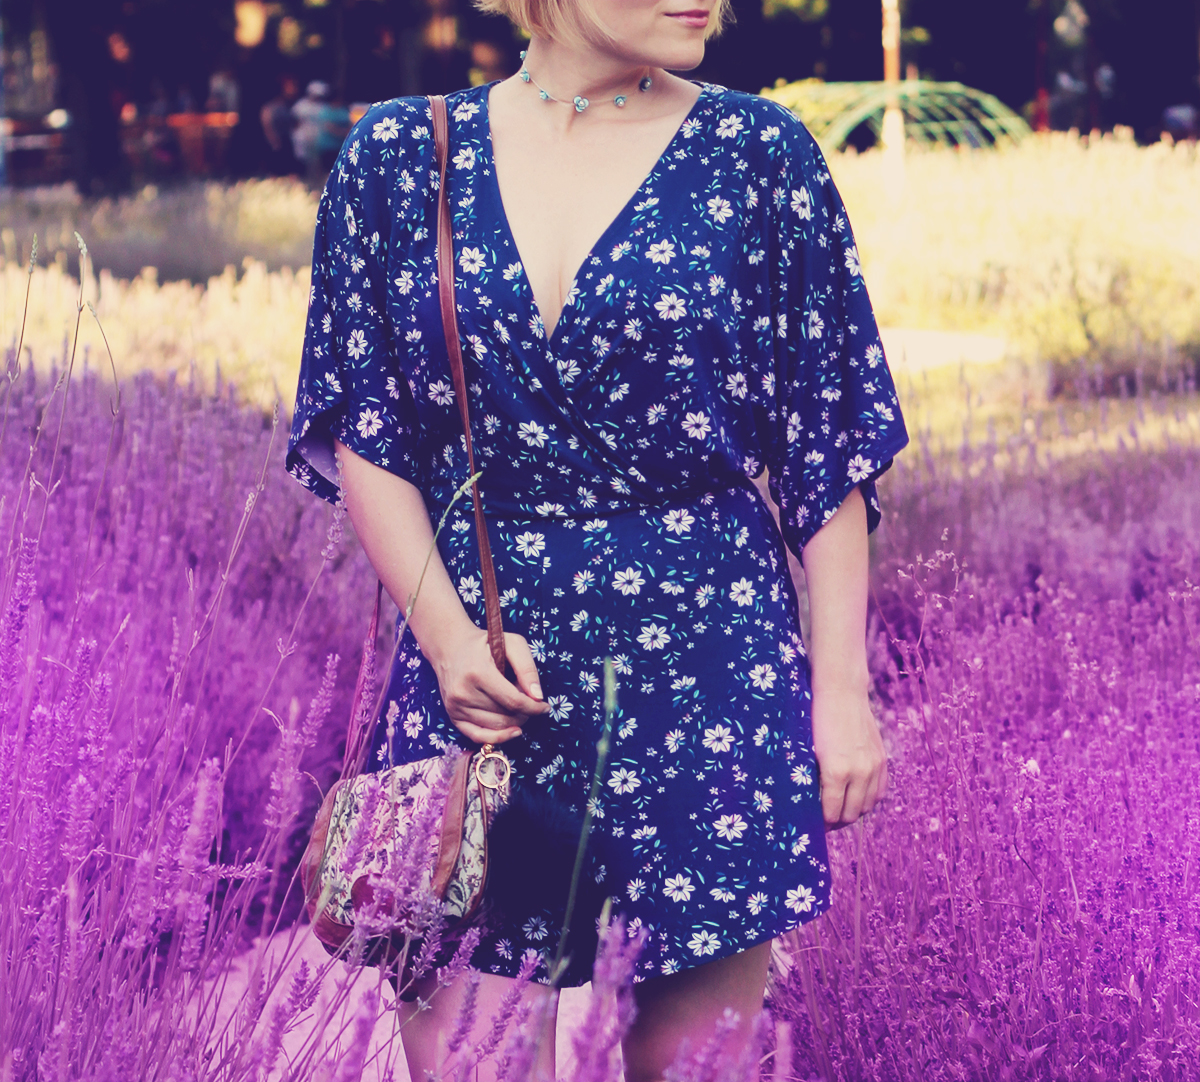 blue floral romper and choker in lavender